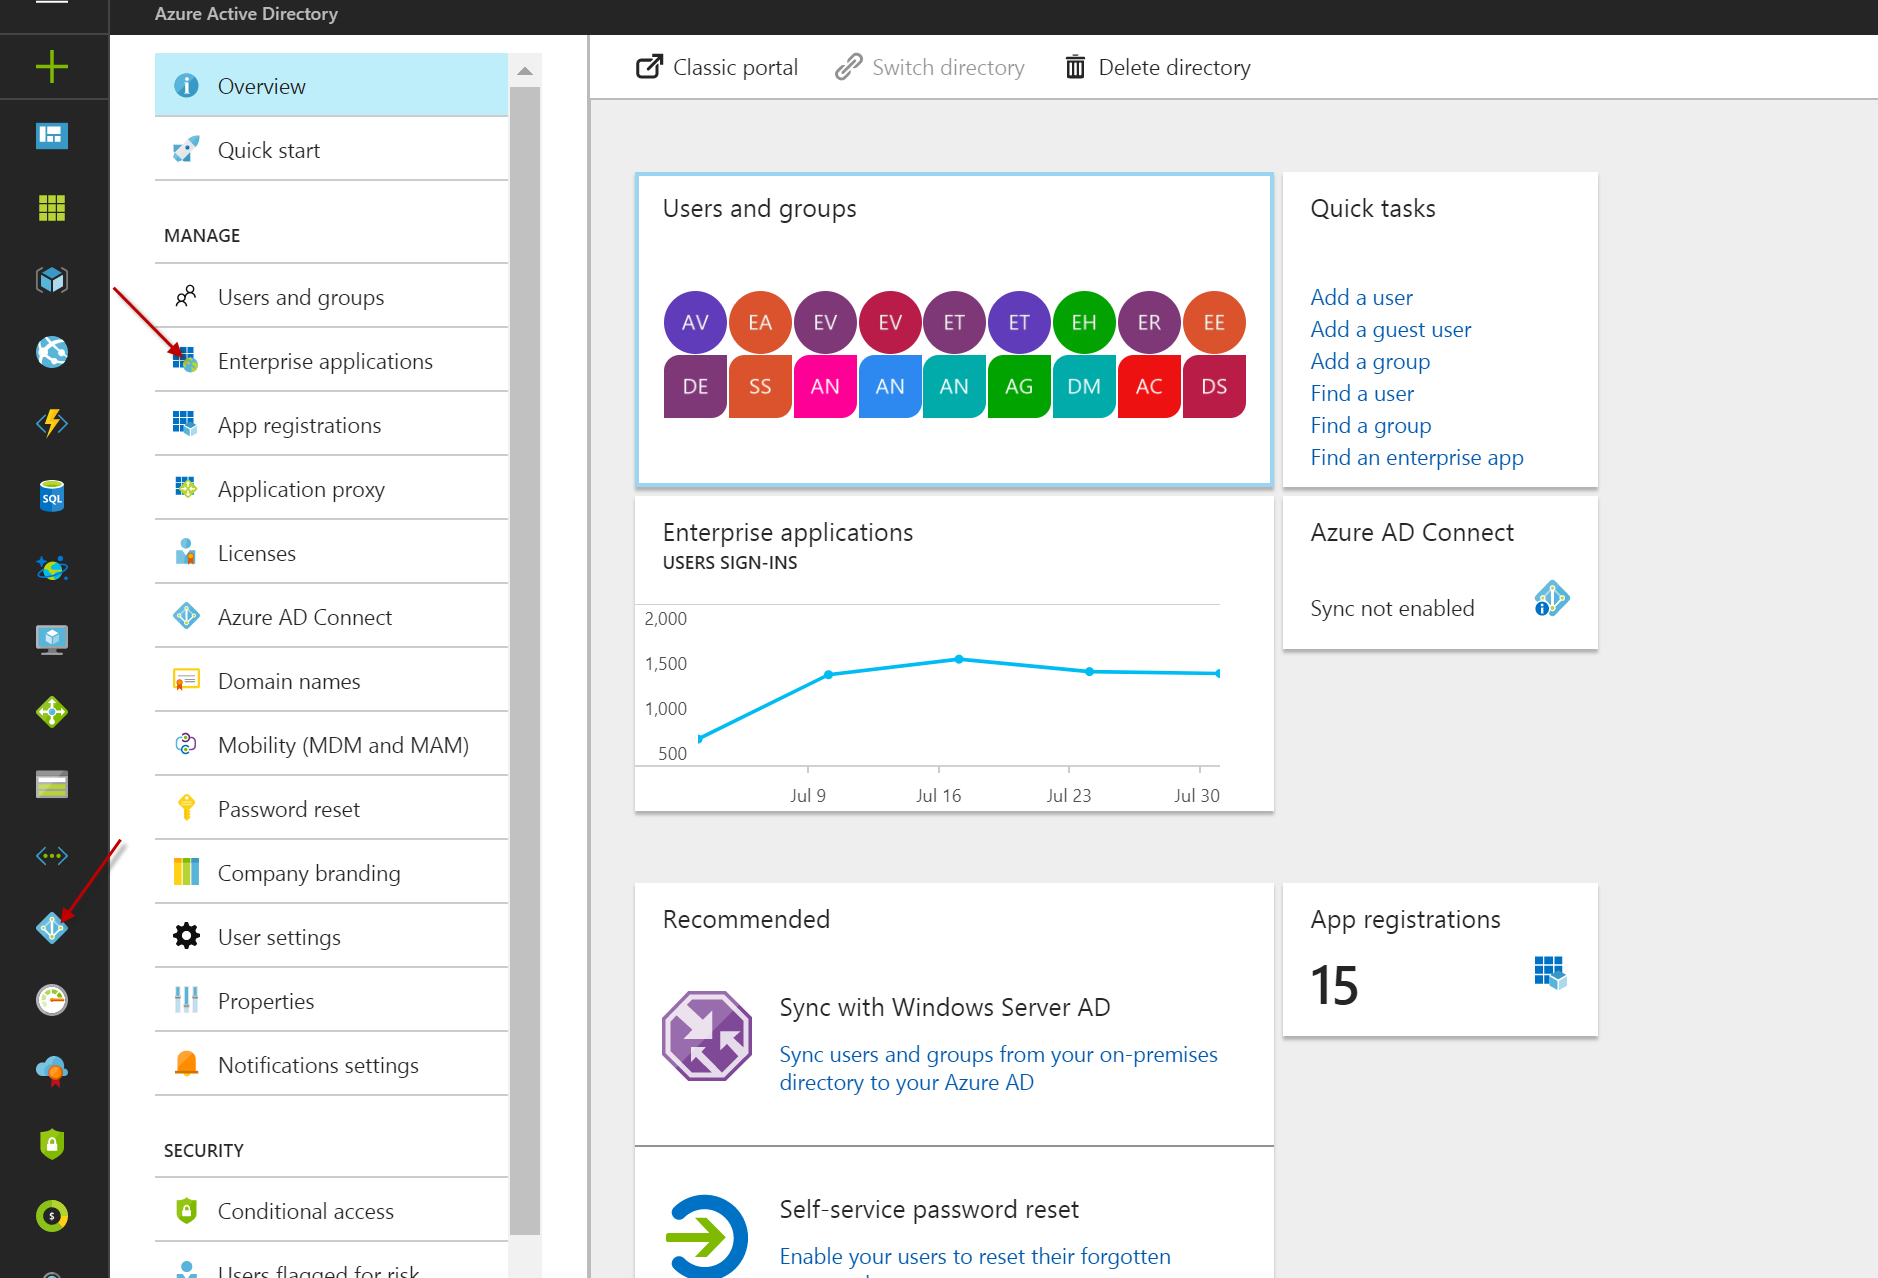 How to add a user in azure - Next You Click On All Applications And Add A New Application